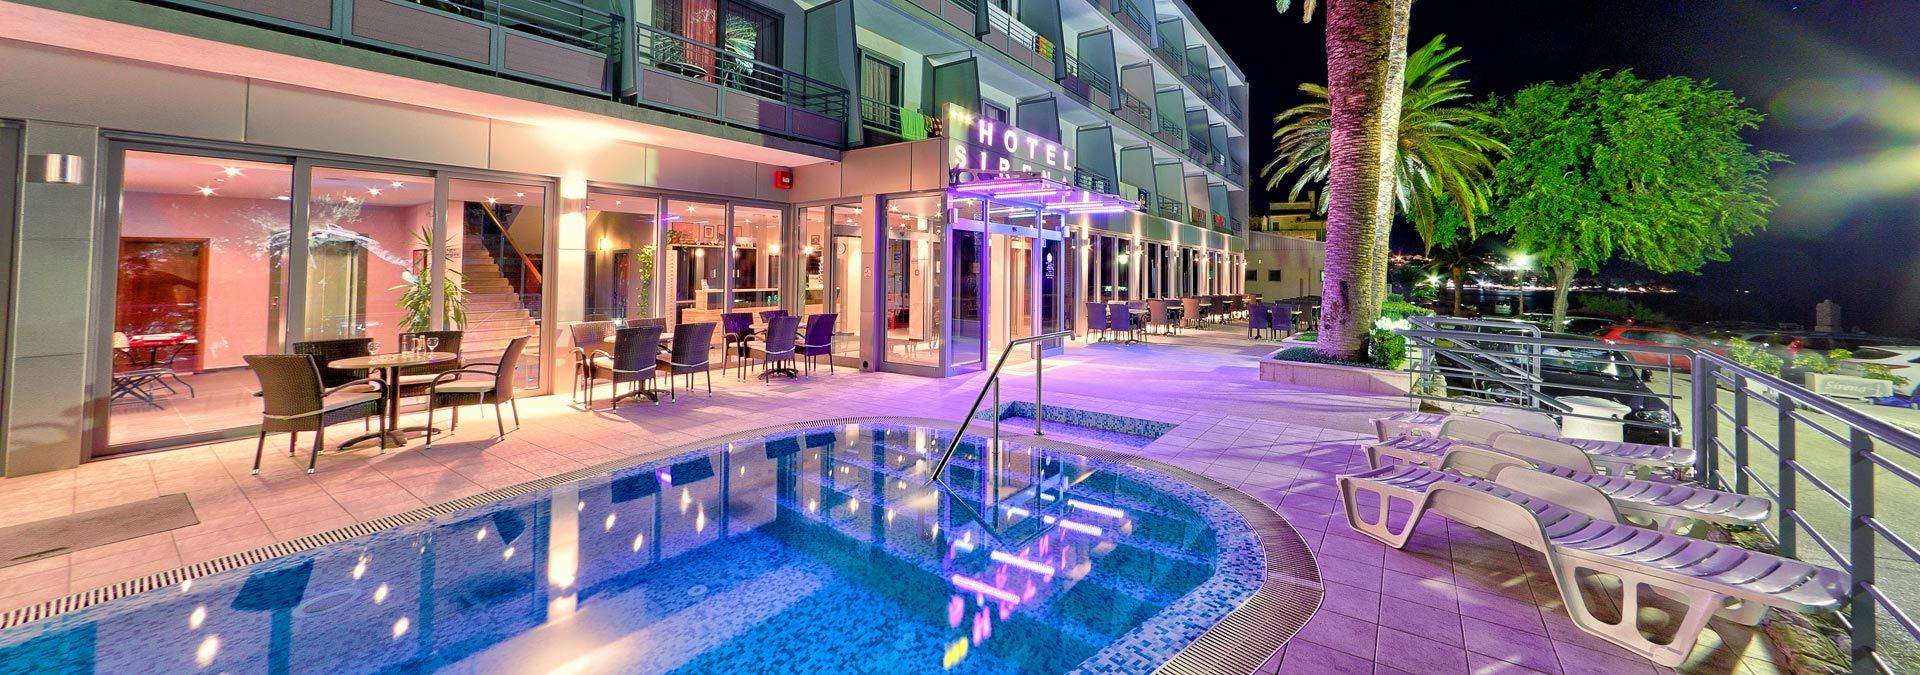 Hotel Sirena night